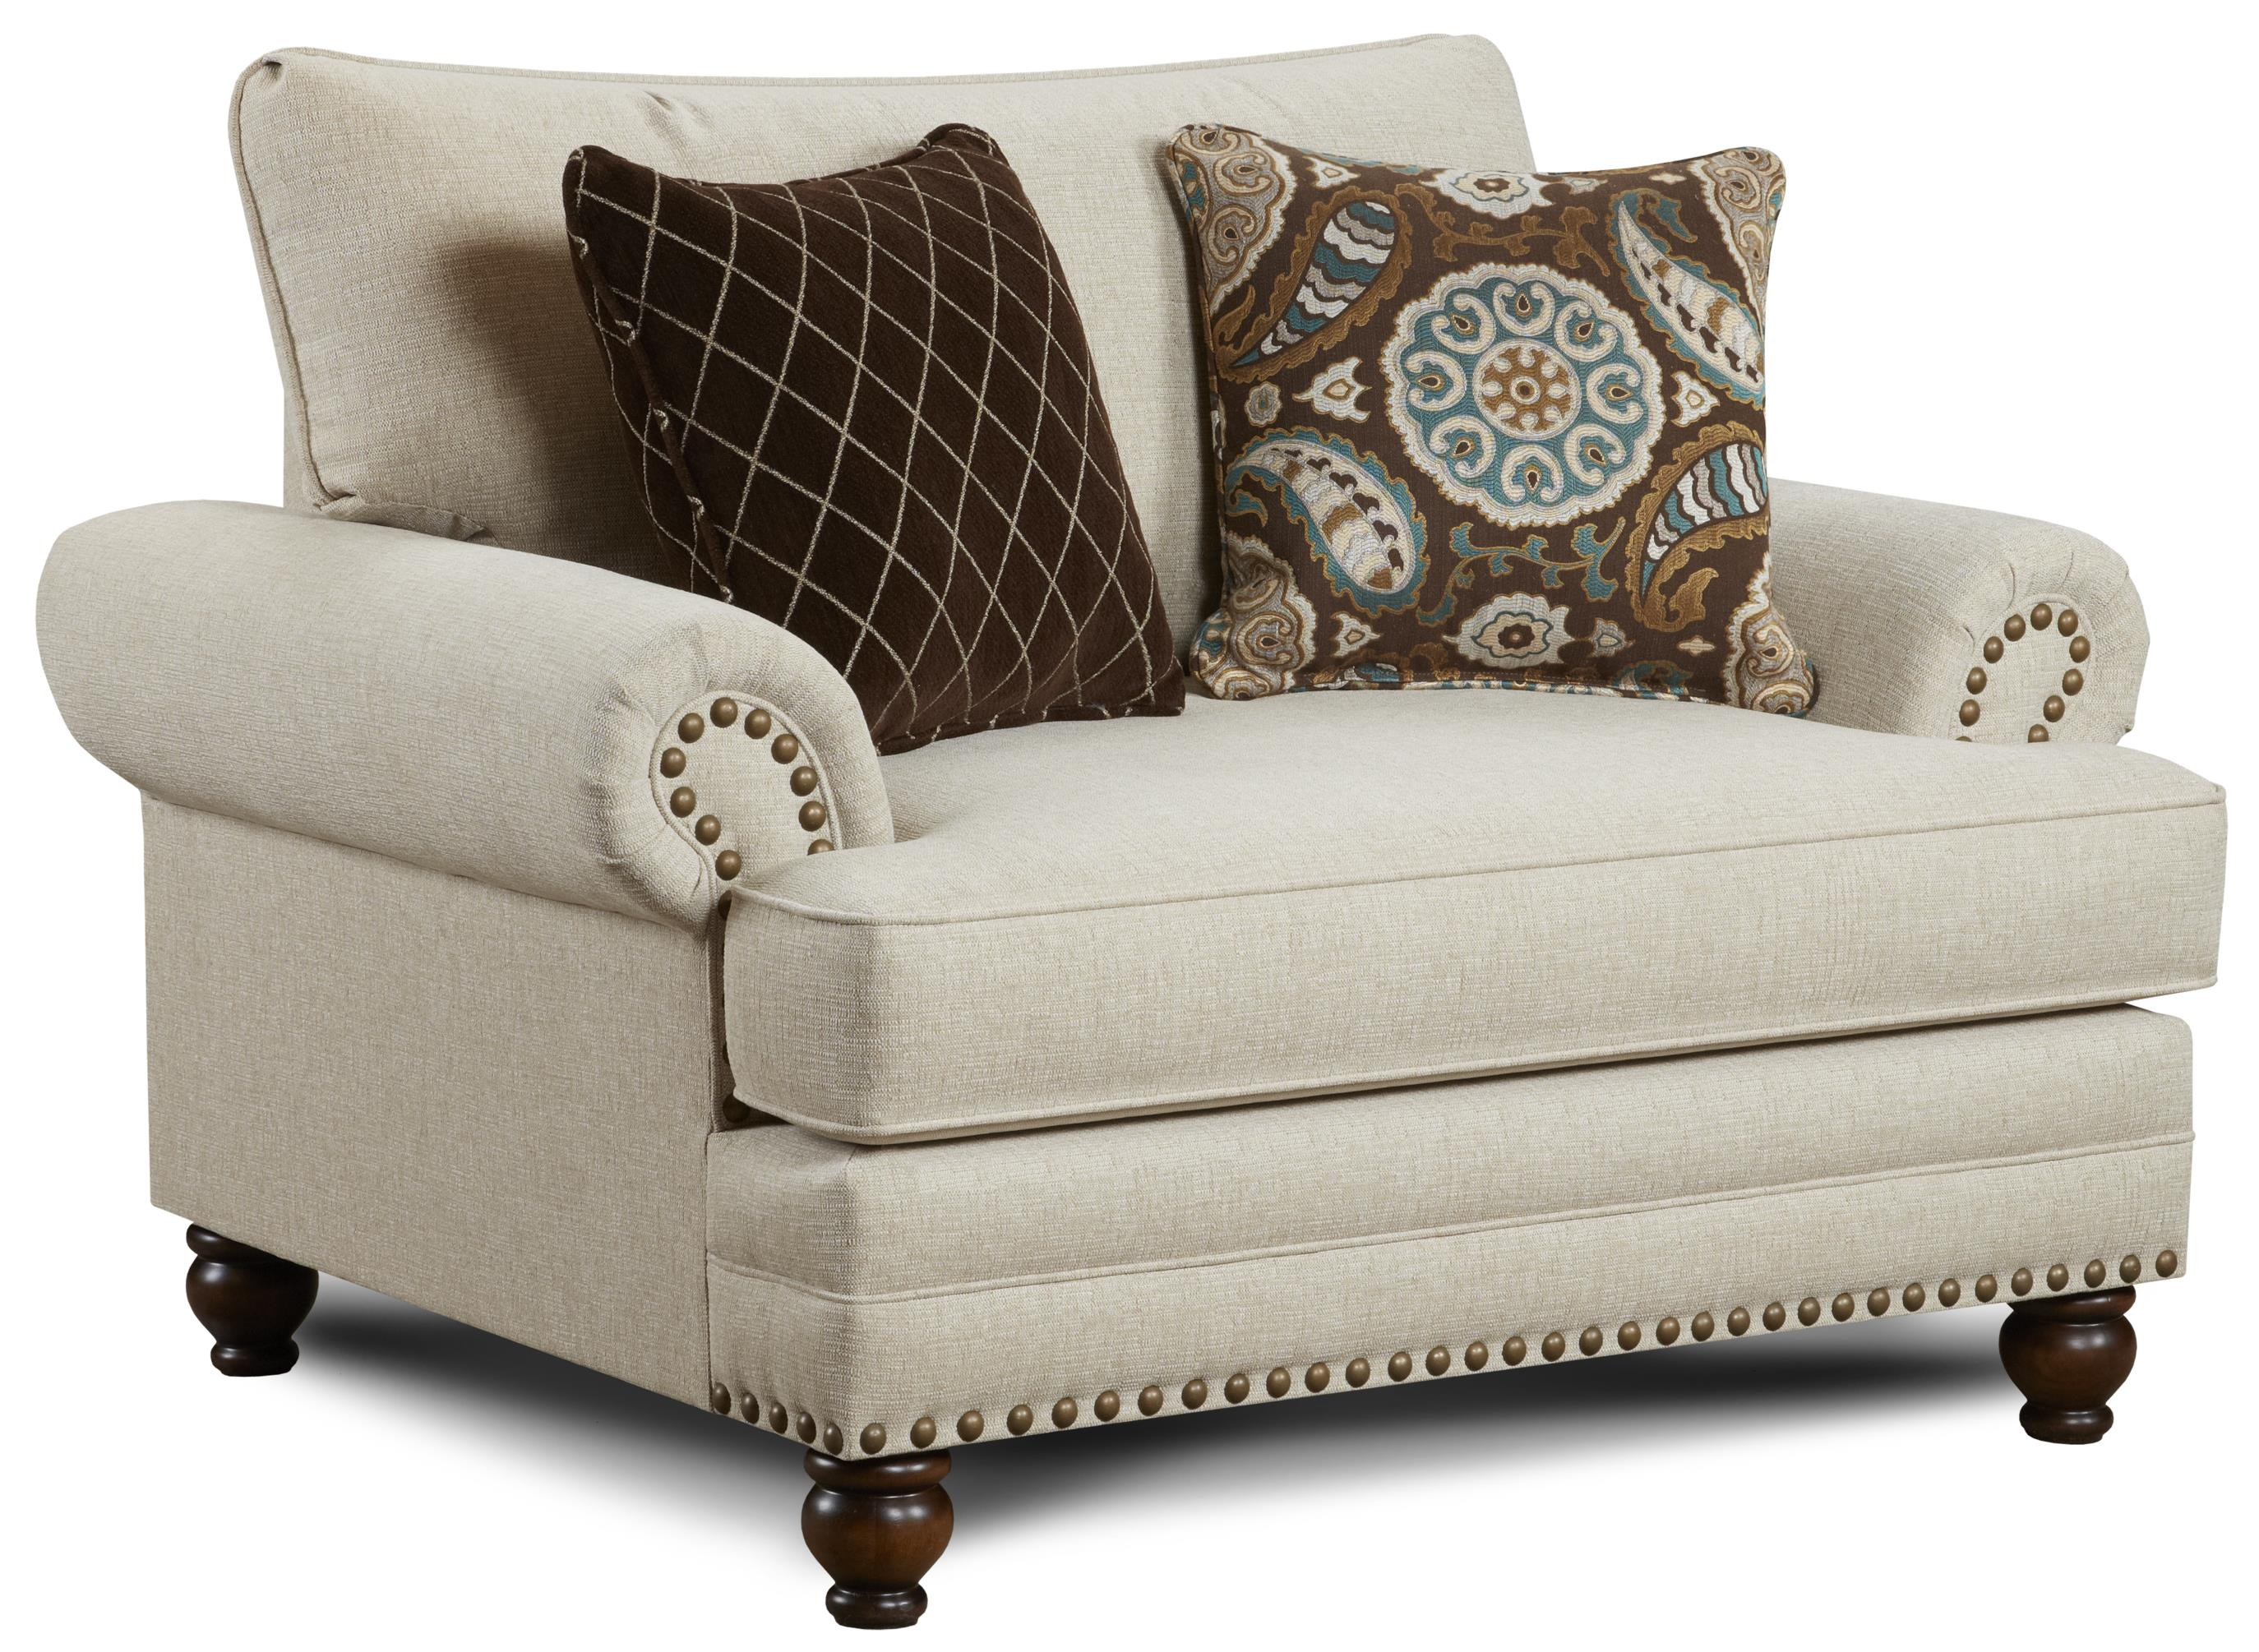 Haley jordan seabury 2822anna white linen traditional for Jordan linen modern living room sofa